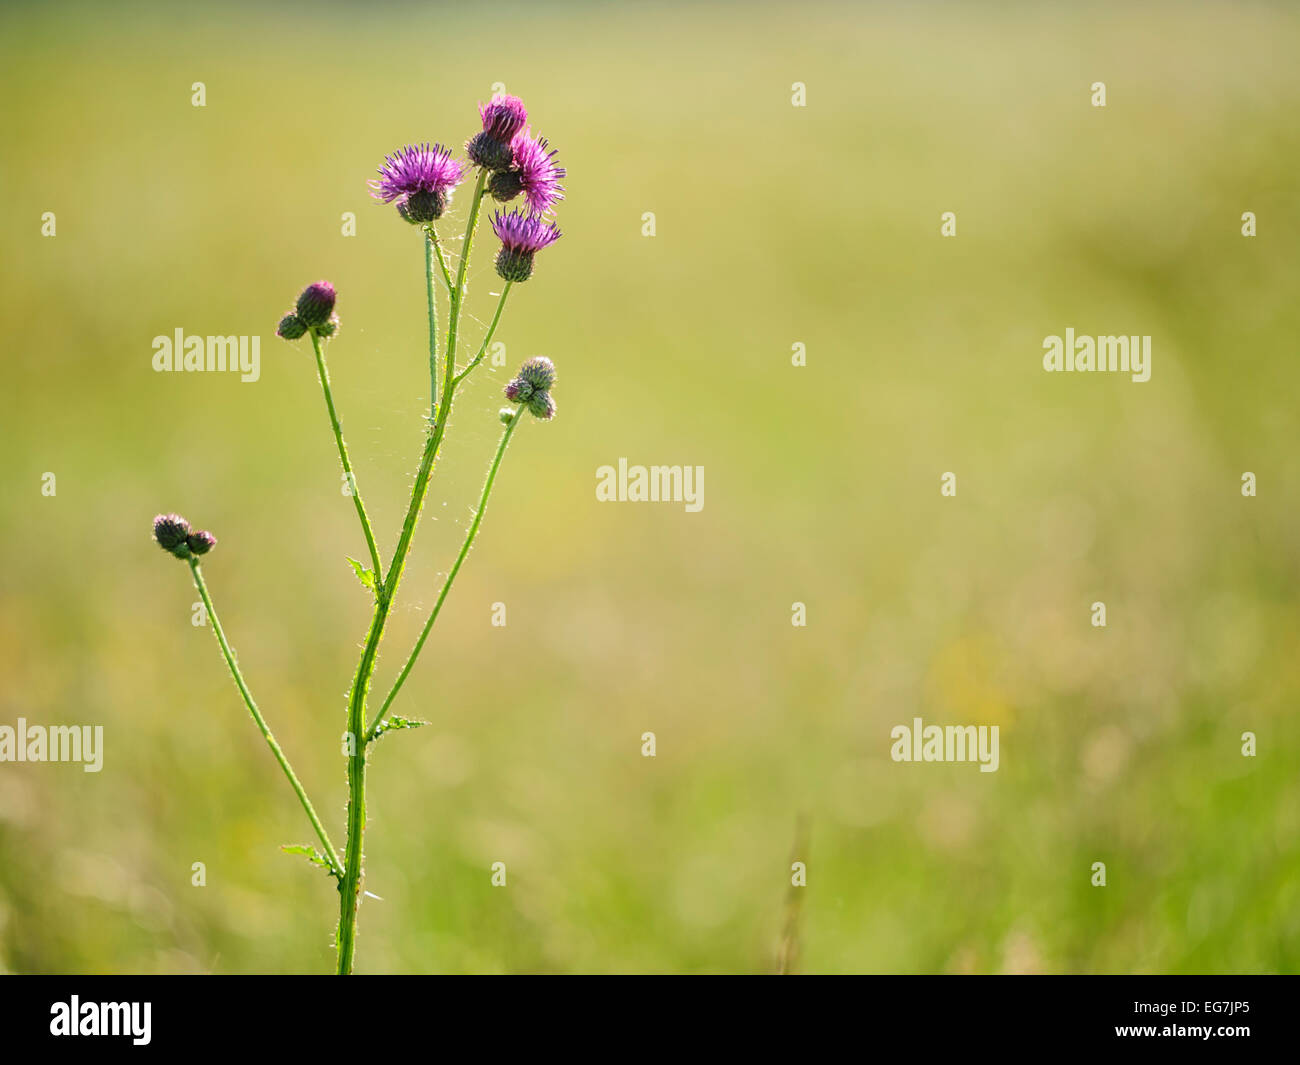 Purple thistle (Carduus) flower on blurred natural background. Stock Photo